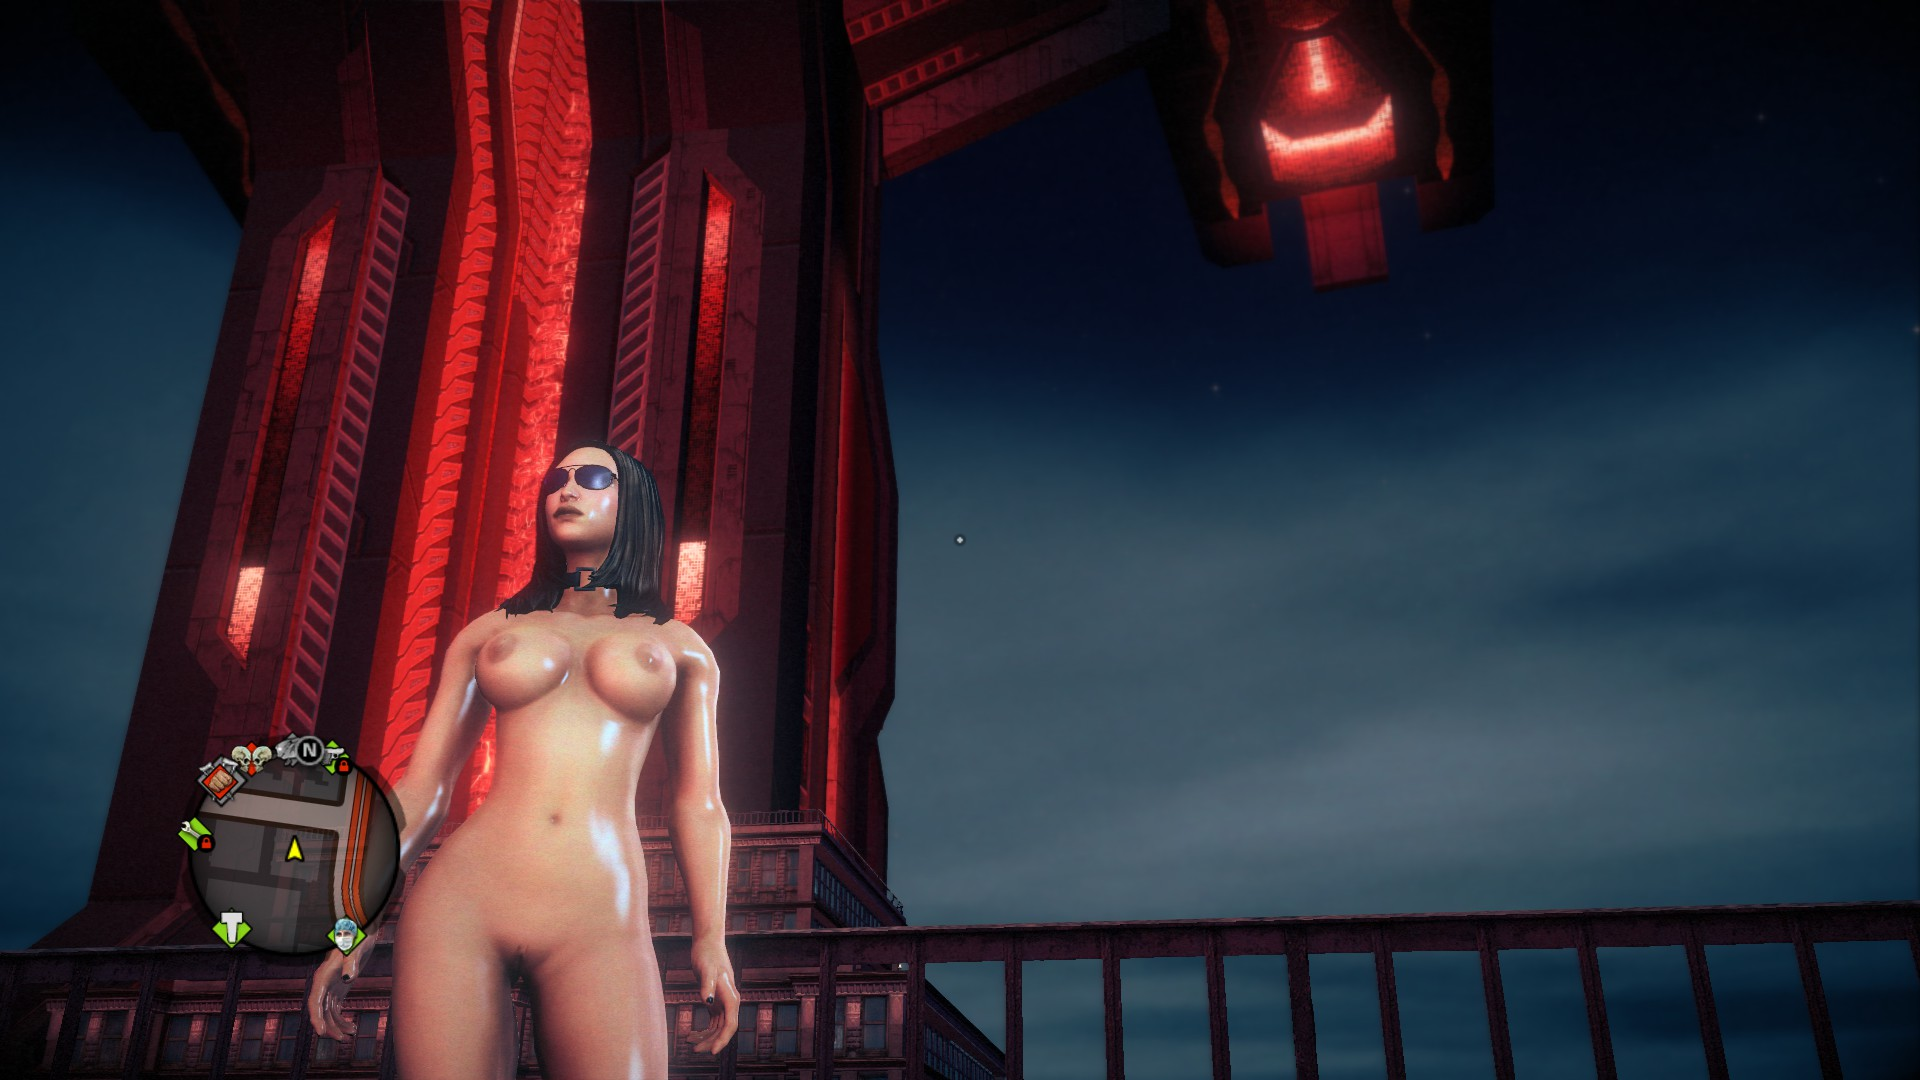 Saints row 4 female nude mod download nsfw photo